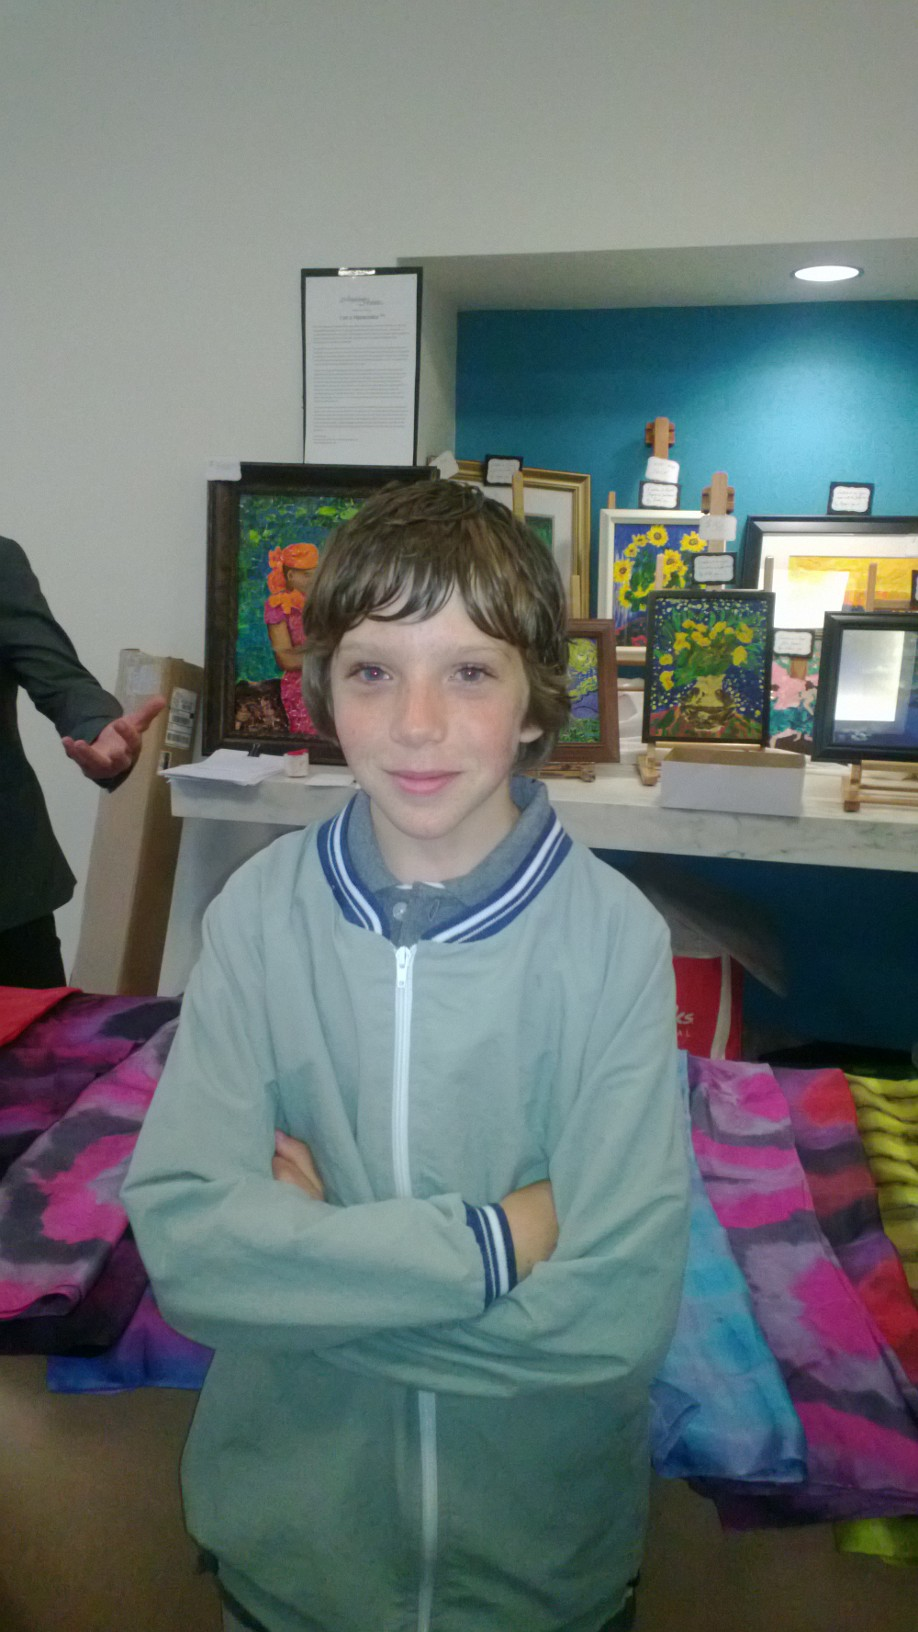 Aidan uses his artistic talents to help children in need by participating in the U.N. exhibit.